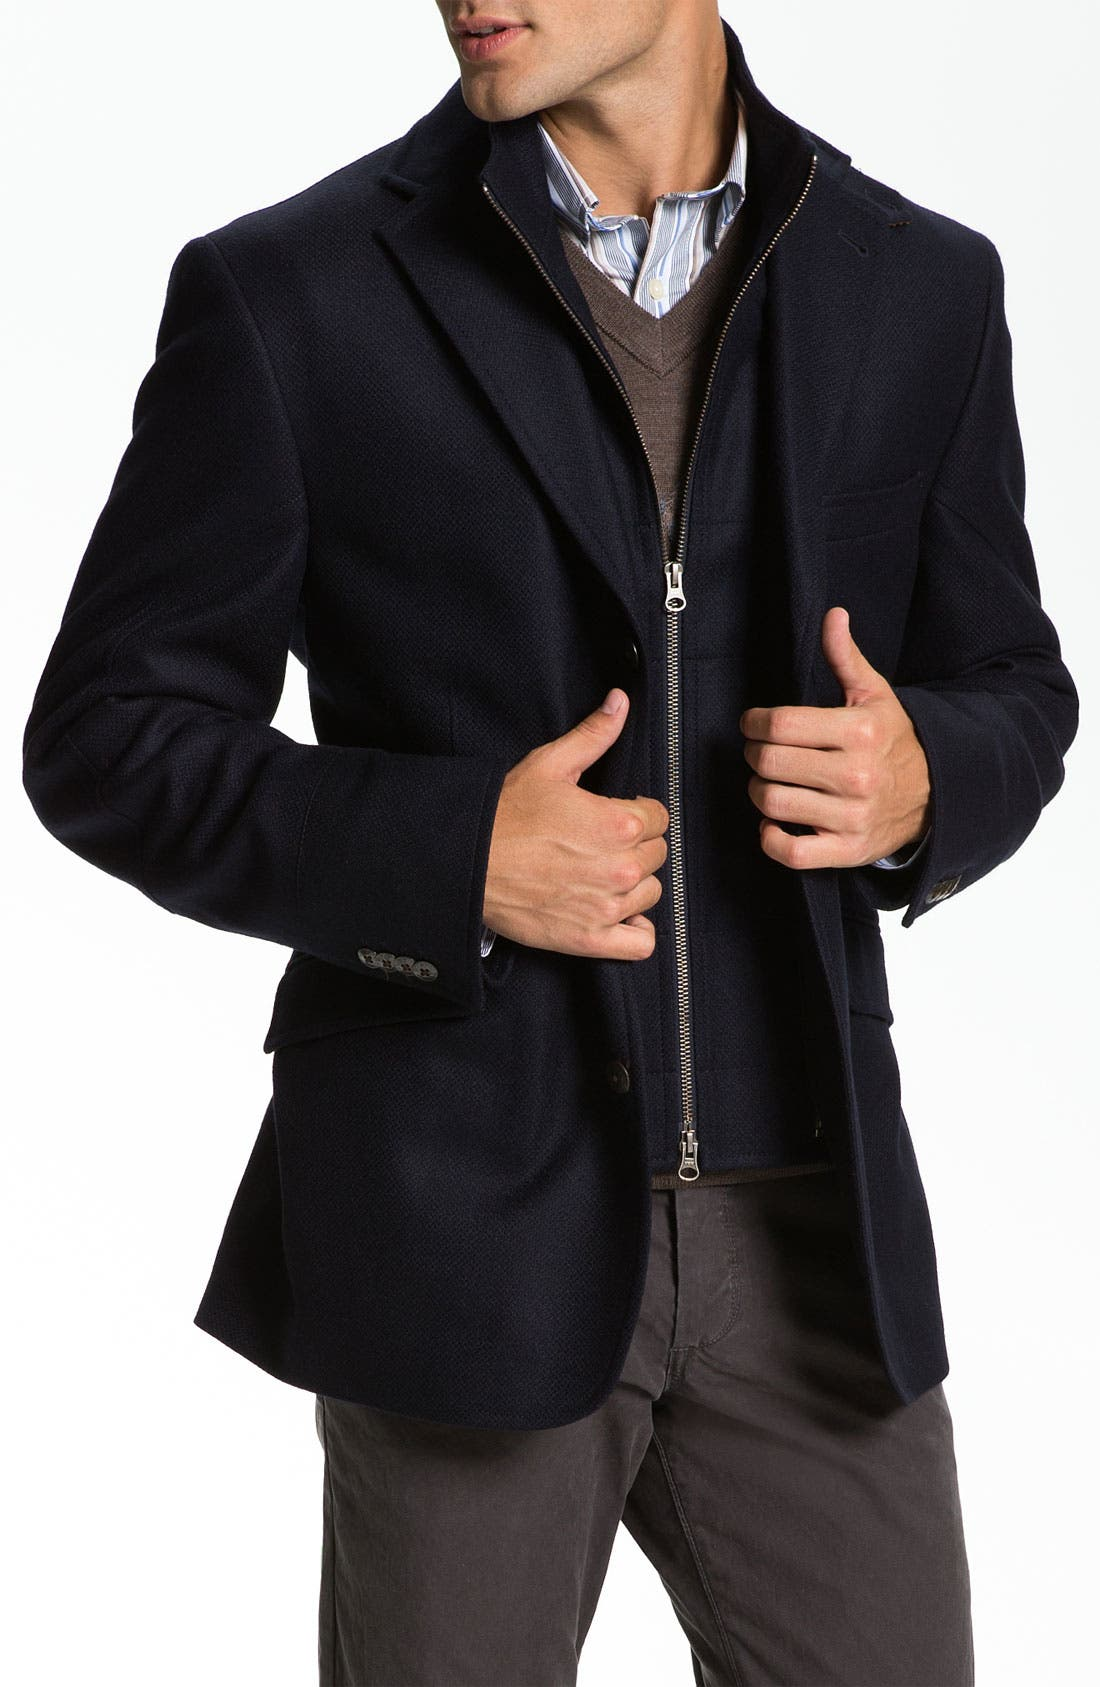 Alternate Image 1 Selected - Kroon 'Ritchie' Wool & Cashmere Blazer Style Coat